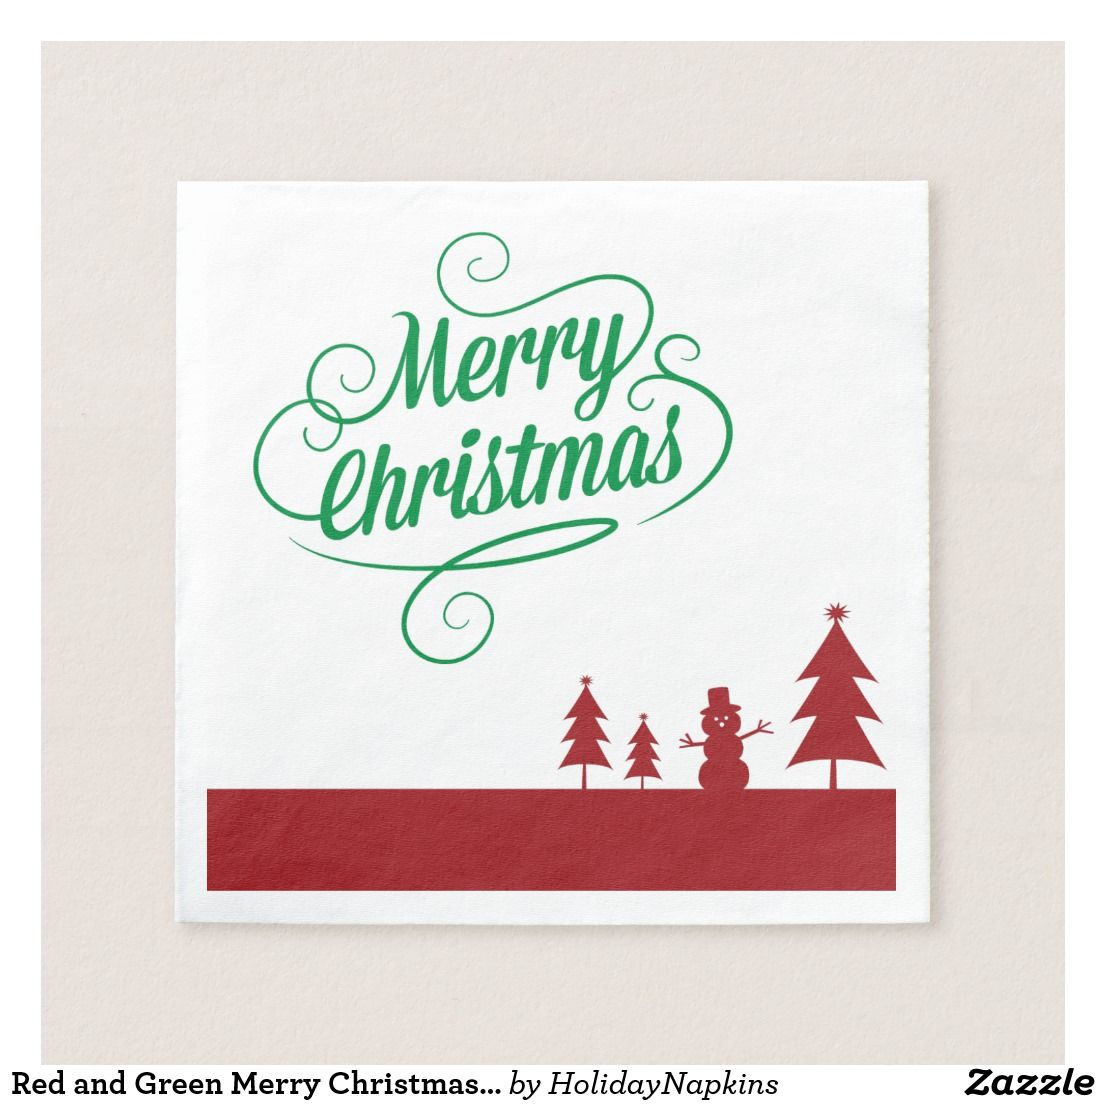 Christmas Party Ideas For Small Business Part - 31: Support Small Business · Red And Green Merry Christmas Party Napkins